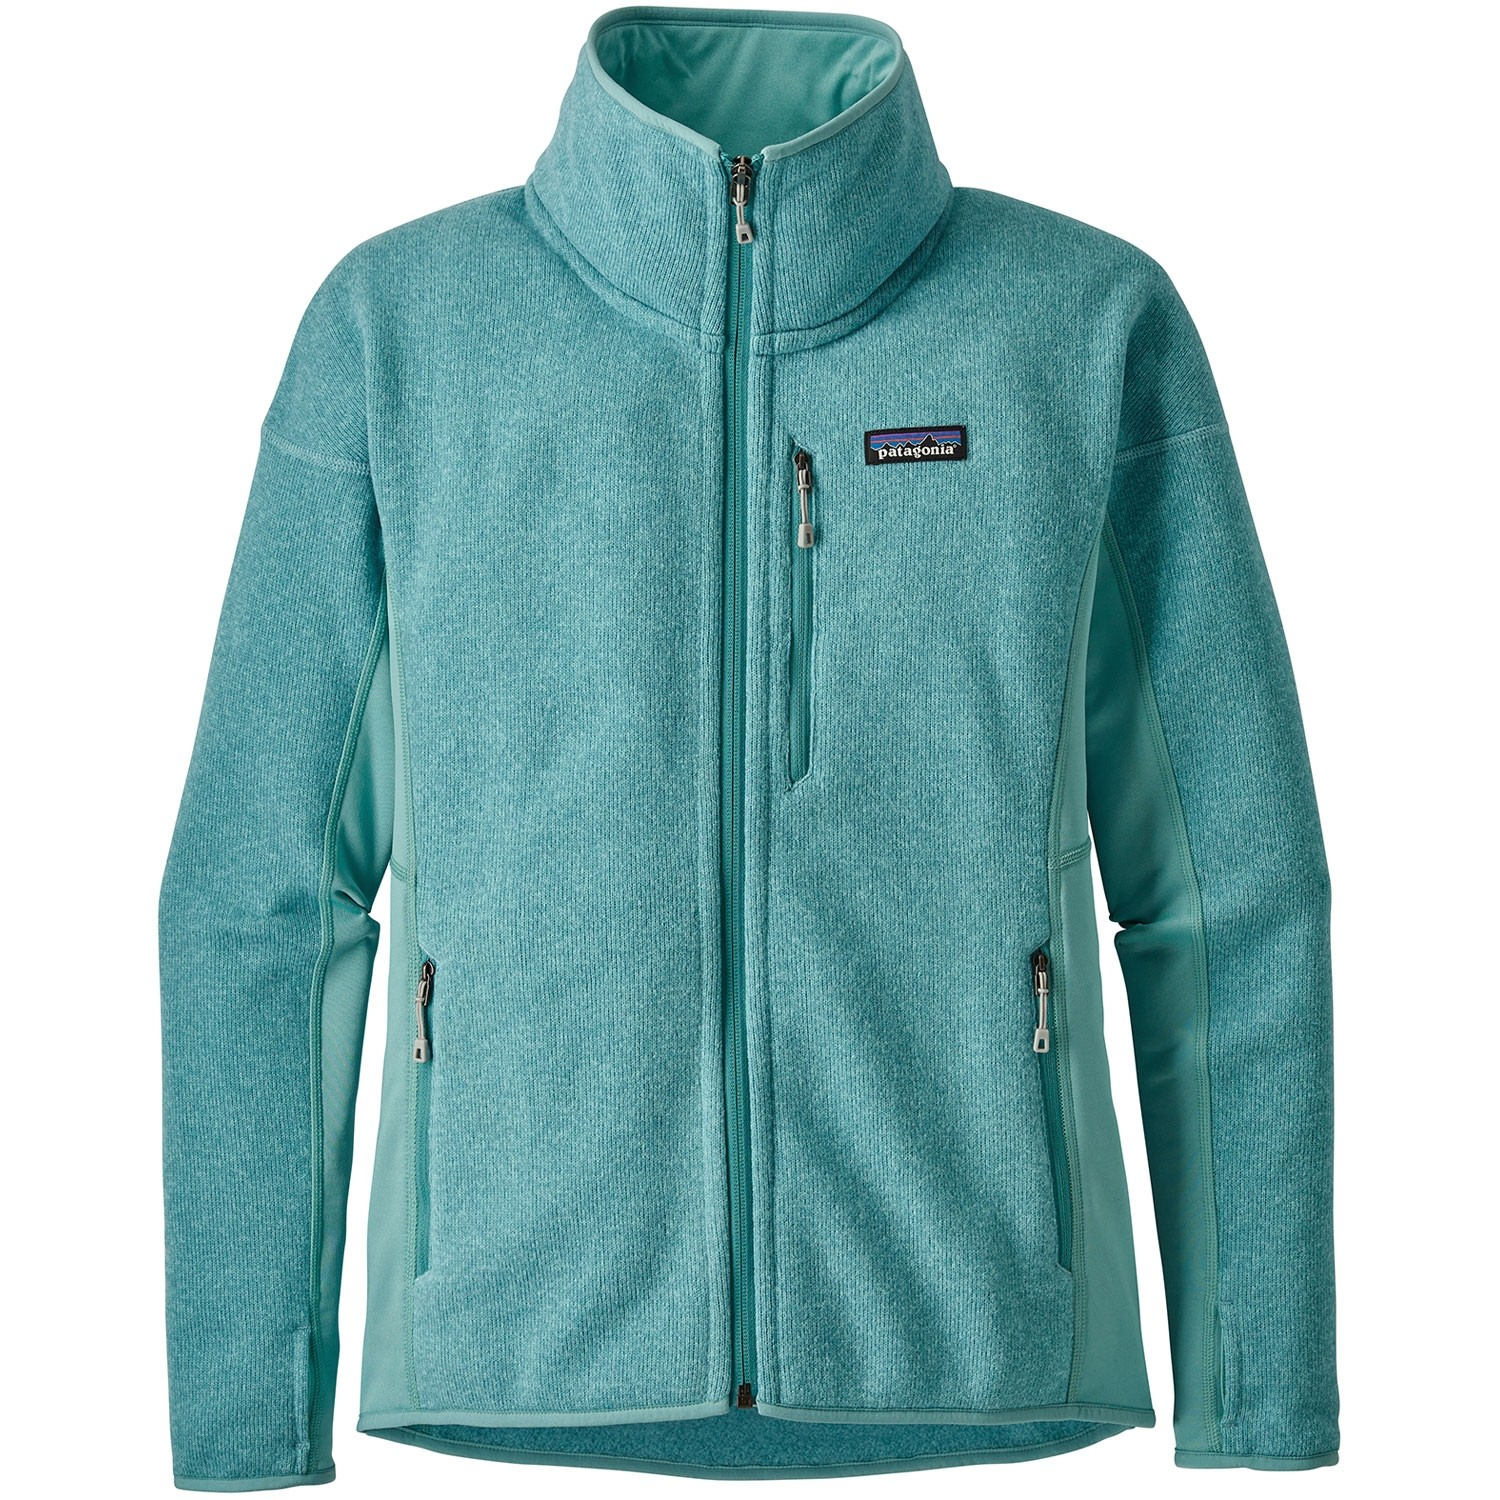 Patagonia Performance Better Sweater Jacket - Women's - Dam Blue